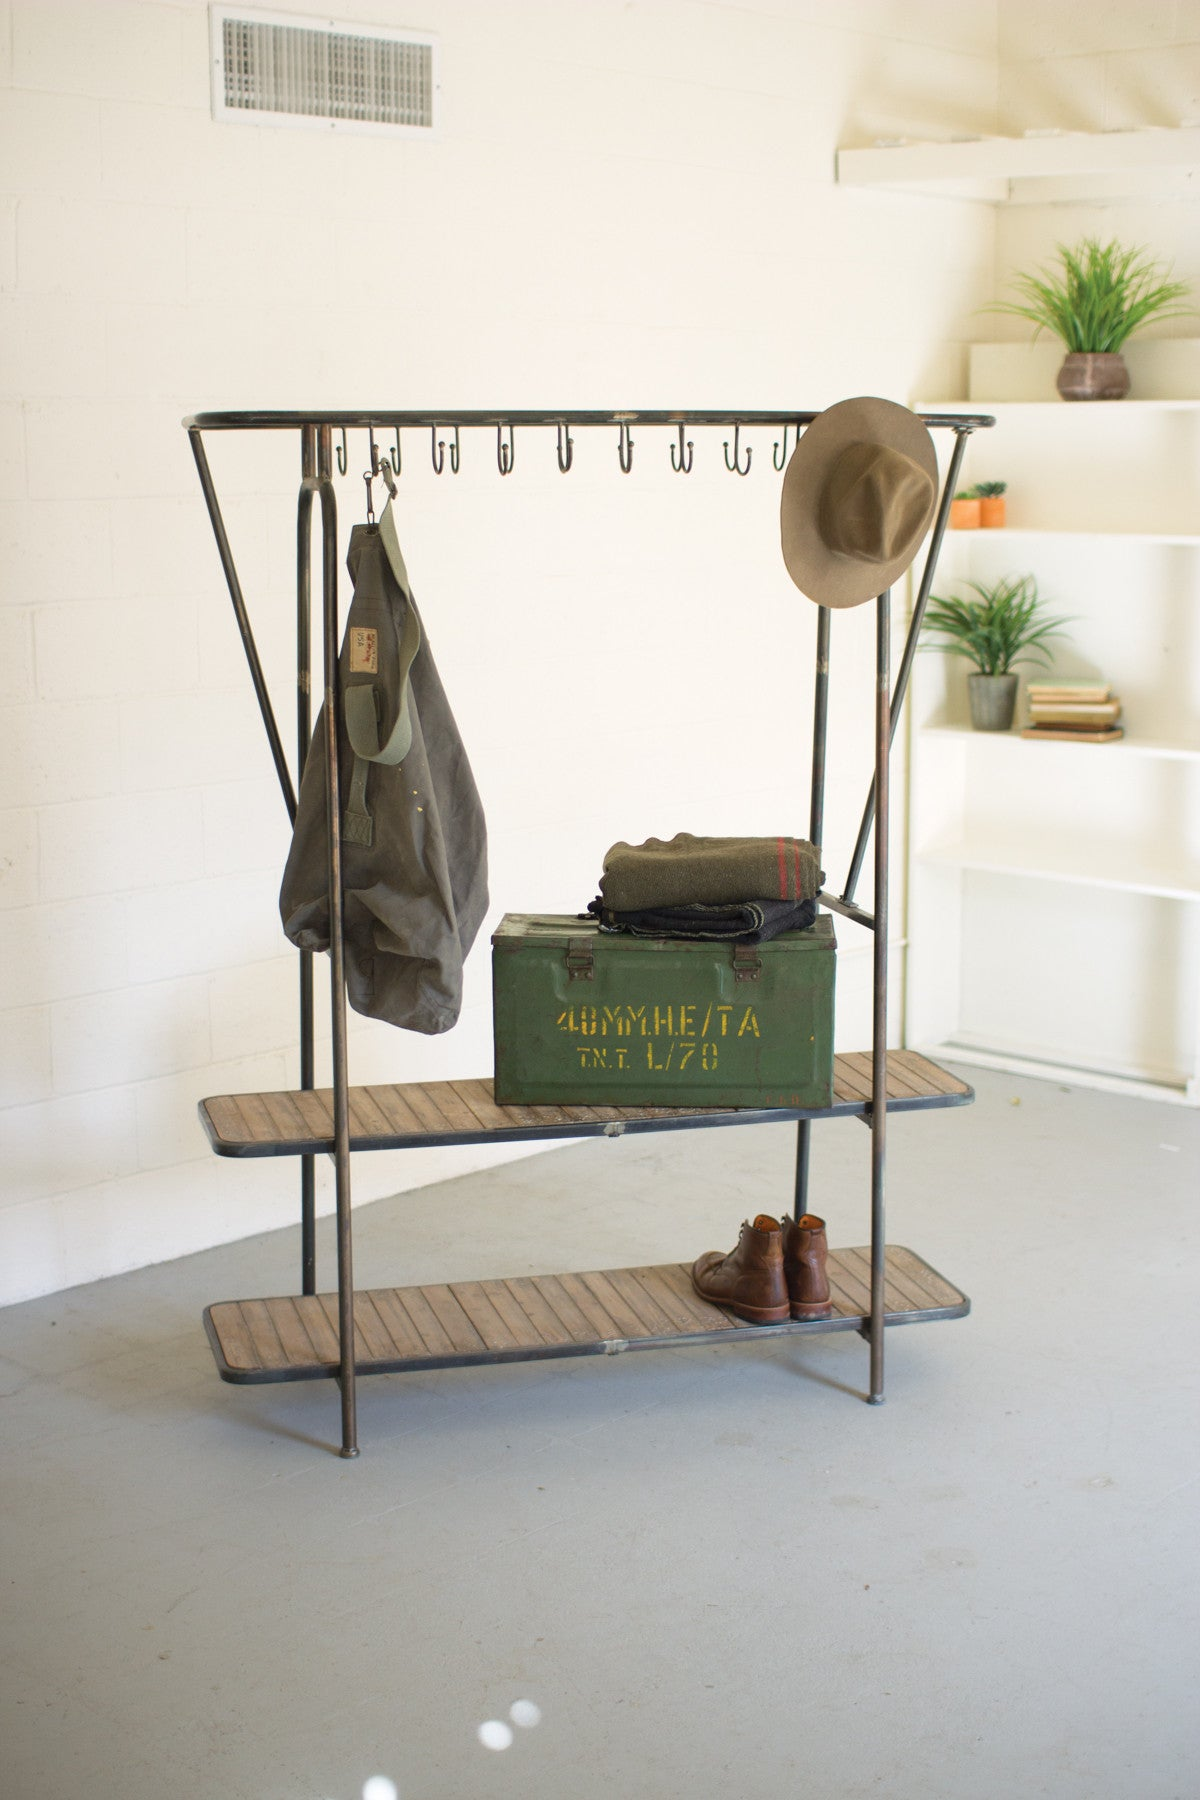 Kalalou Wood and Iron Coat Rack or Mudroom Bench CLL1361 - Houzz